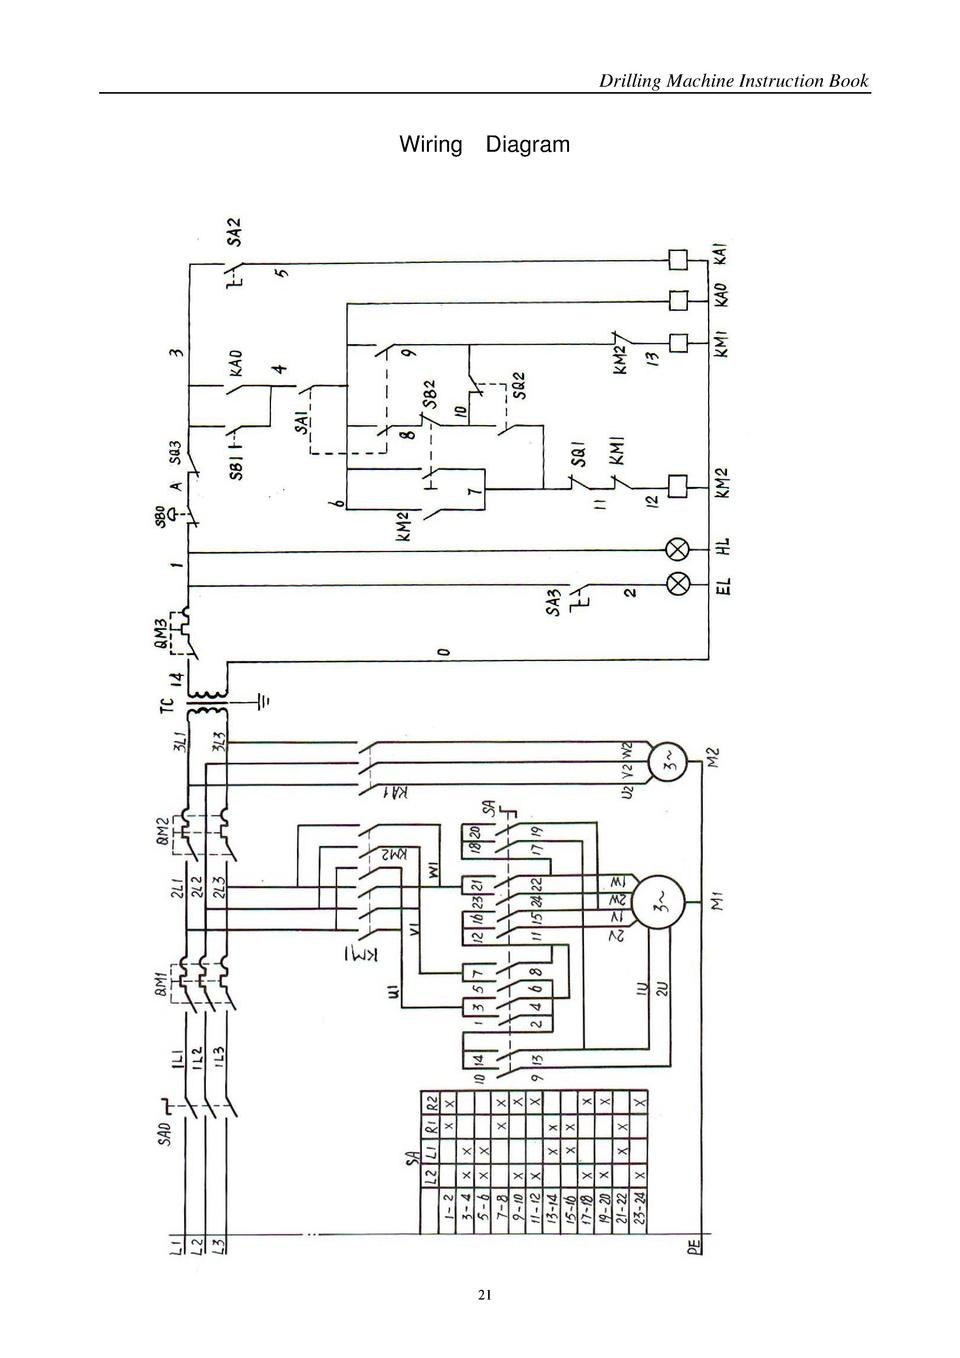 hight resolution of drilling machine instruction book wiring diagram 21